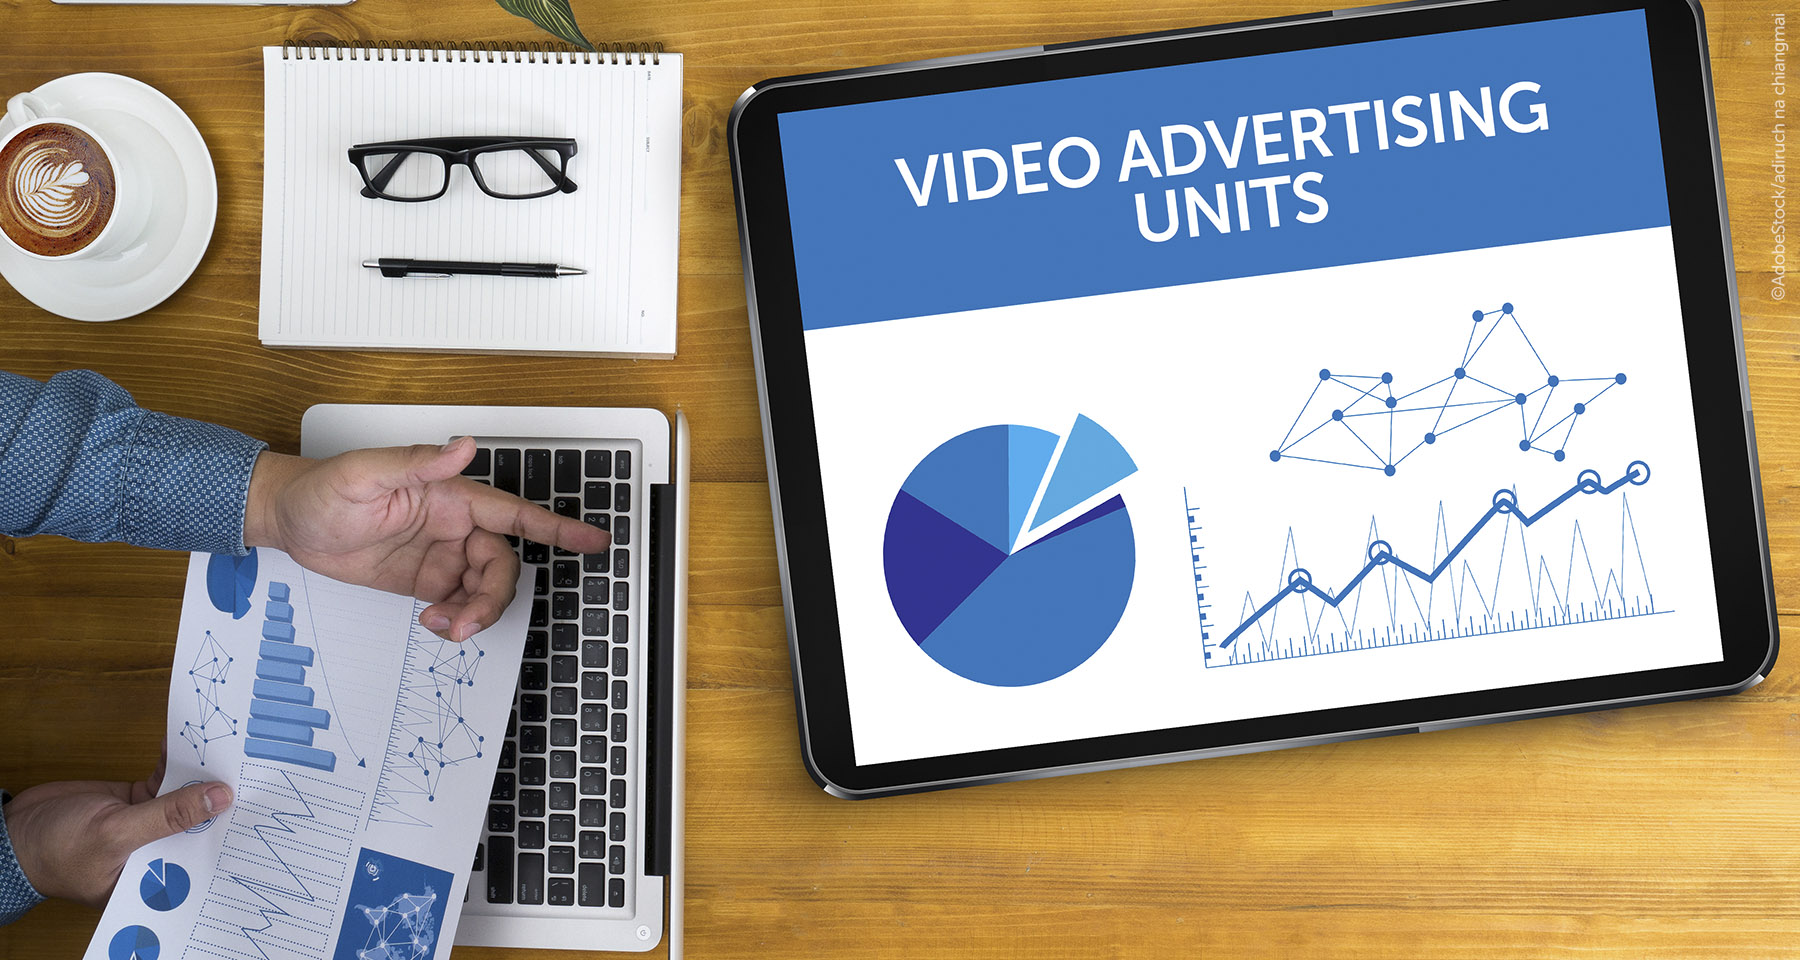 Video advertising more lucrative than display ads